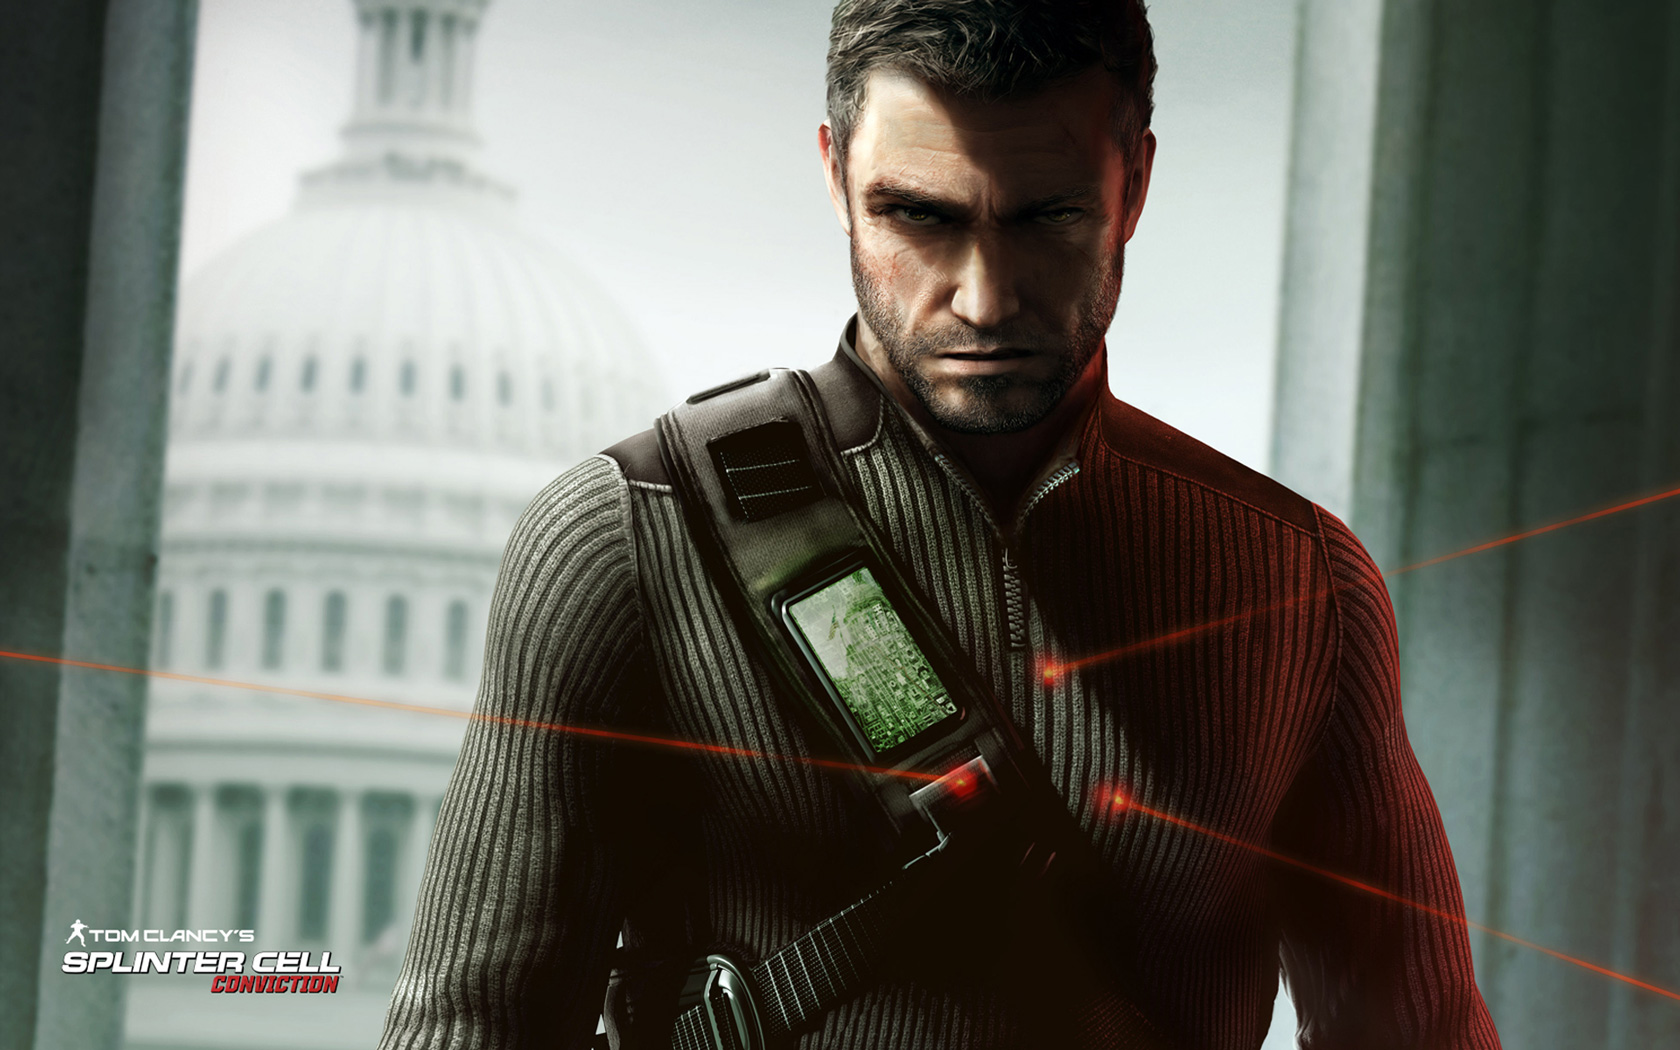 Free Splinter Cell: Conviction Wallpaper in 1680x1050